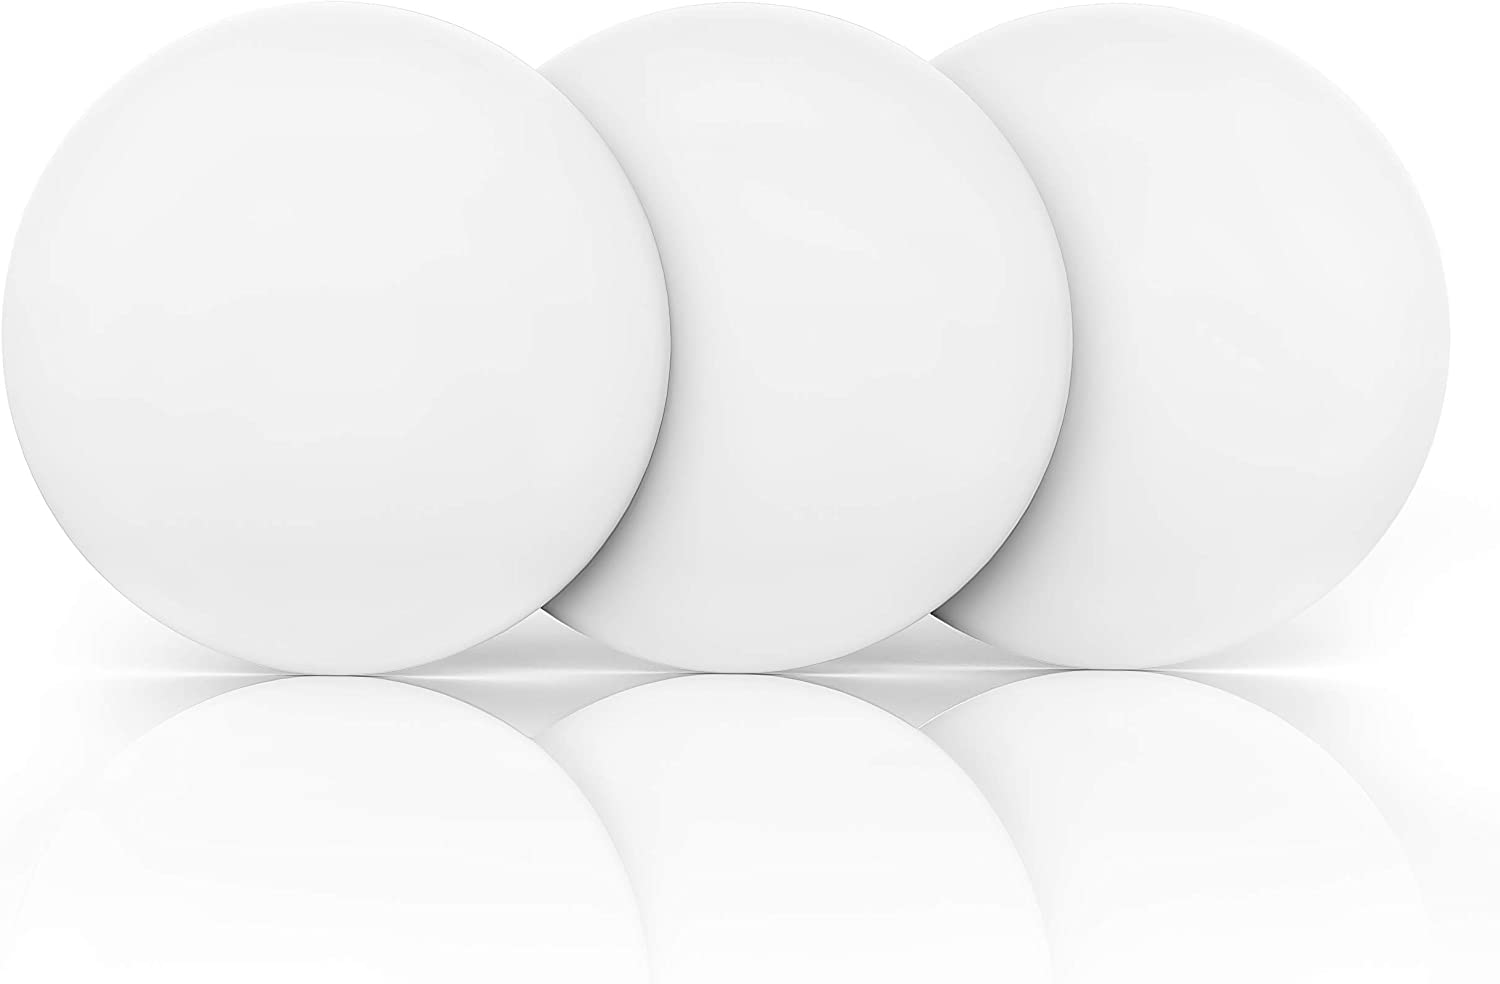 """Door Stopper Wall Protector Large 3.15"""" (3 PCS) with Strong 3M Adhesive - Quiet and Shock Absorbent Silicone Wall Protectors from Door Knobs - Discreet Door Bumper to Protect Every Wall Surface: Home Improvement"""